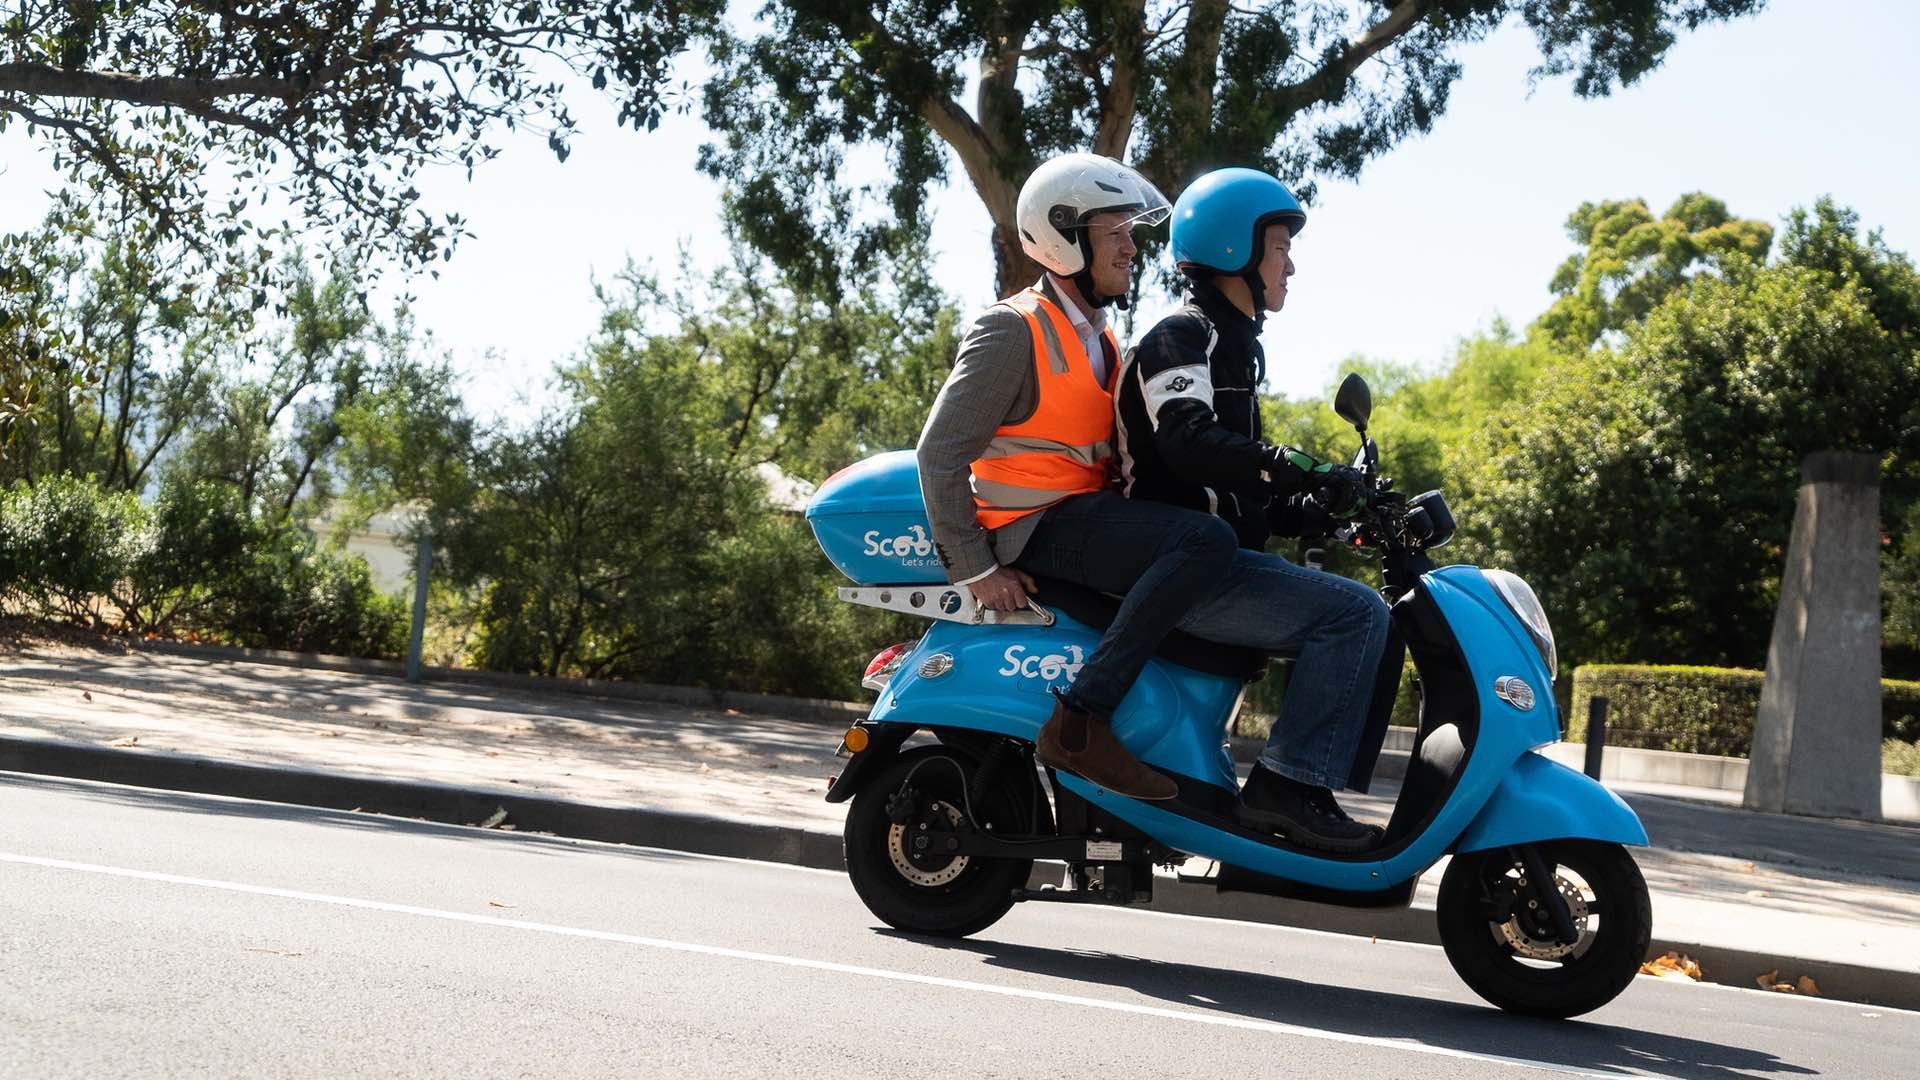 Australia's First Scooter Taxi Service Is Now Scooting Around the Streets of Melbourne